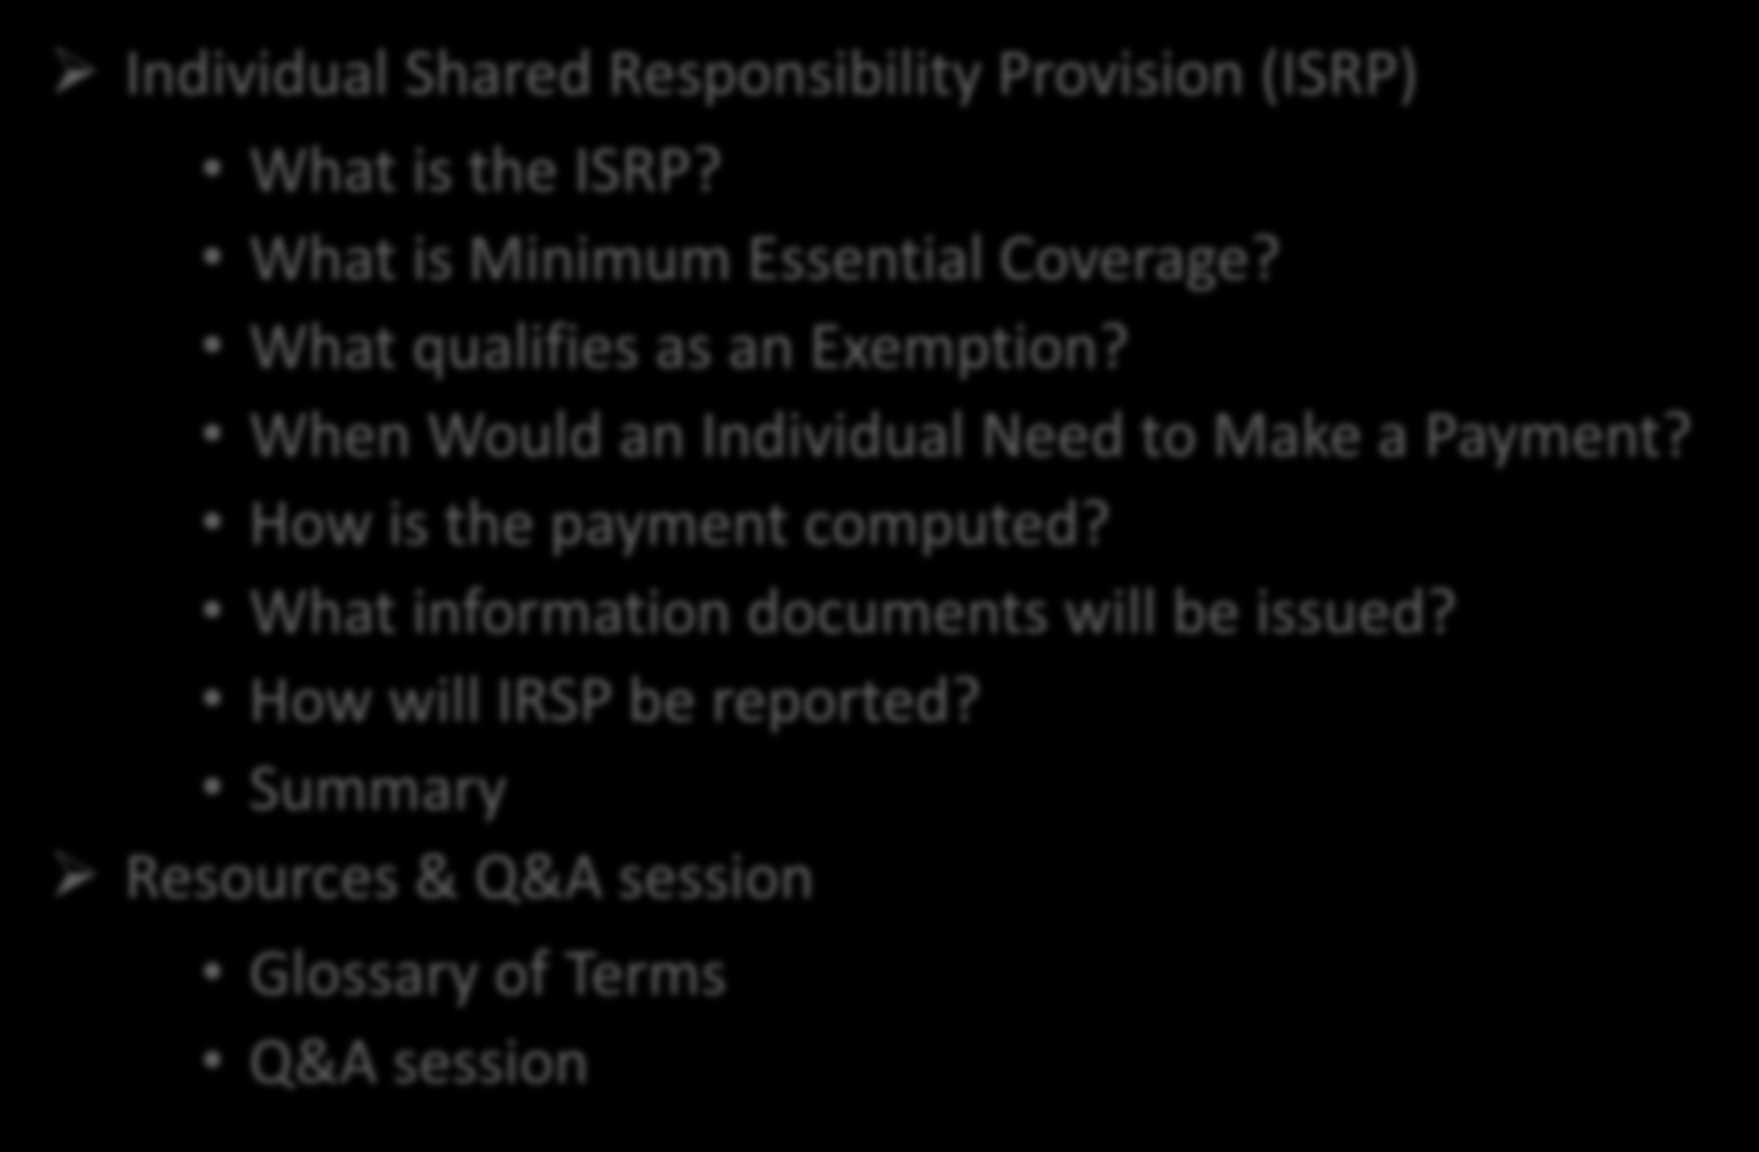 Agenda Individual Shared Responsibility Provision (ISRP) What is the ISRP? What is Minimum Essential Coverage? What qualifies as an Exemption?